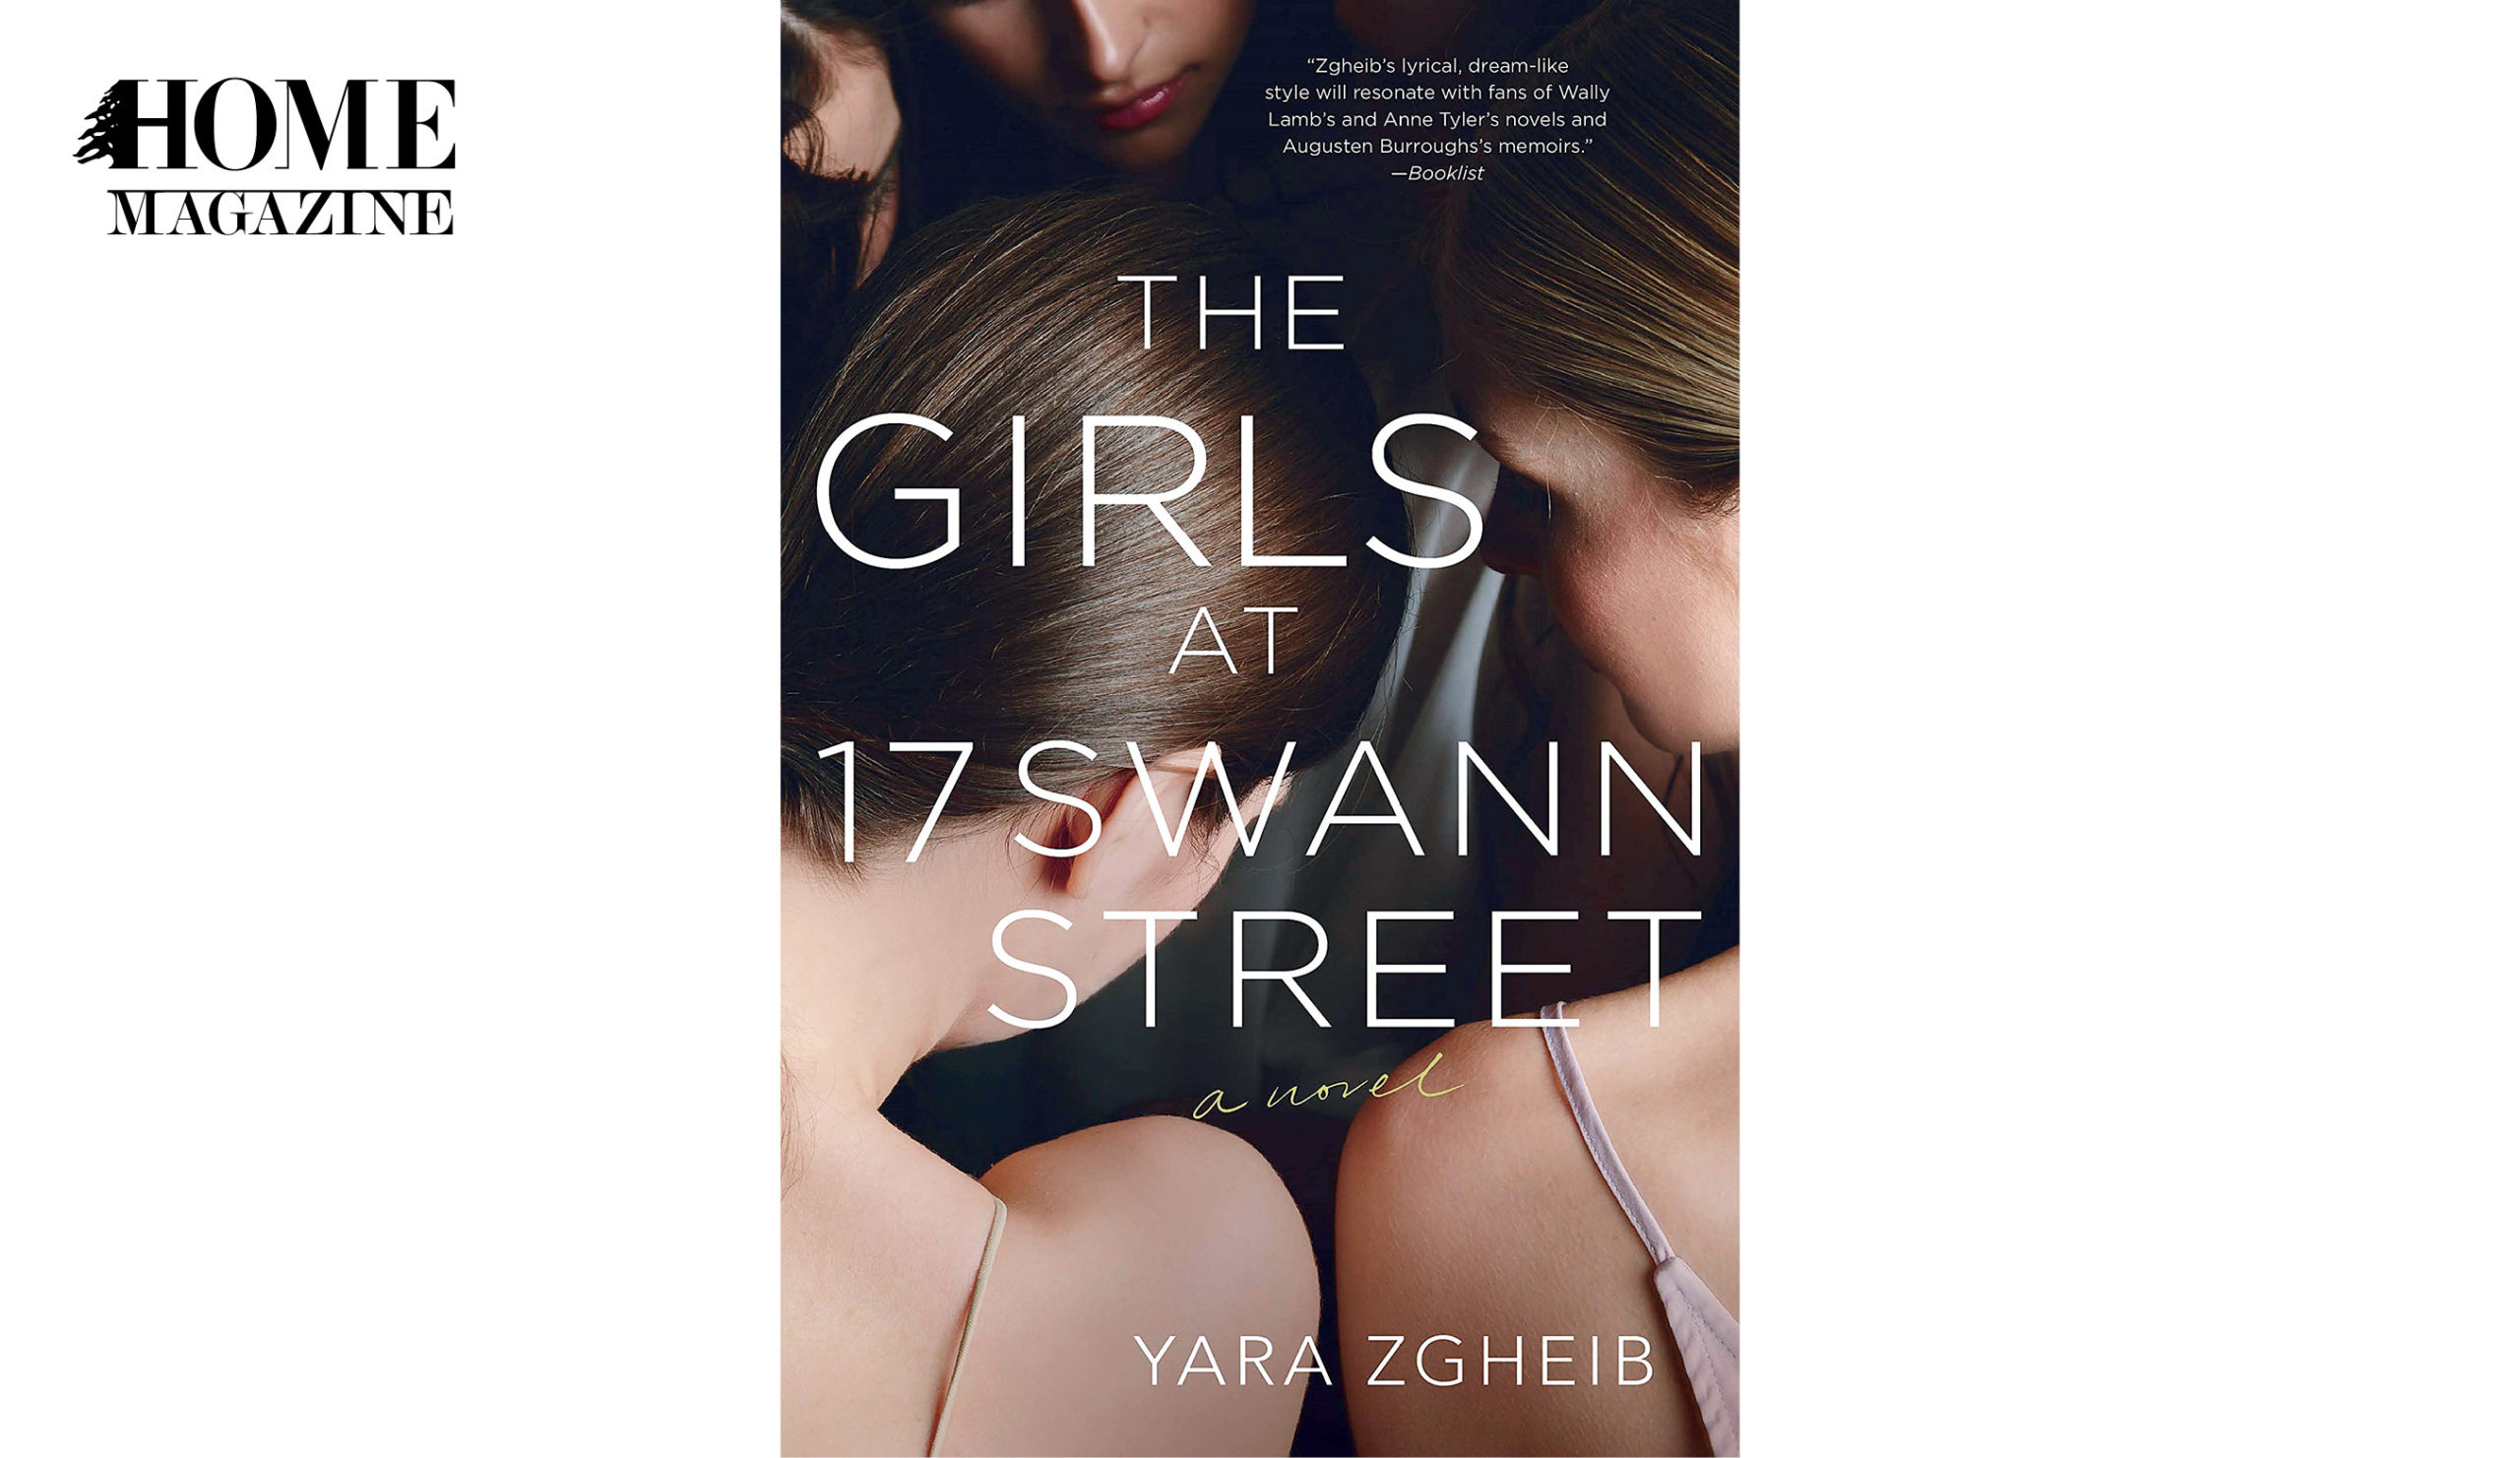 Booked cover titled The Girls at 17 Swann Street with background image of 2 girls